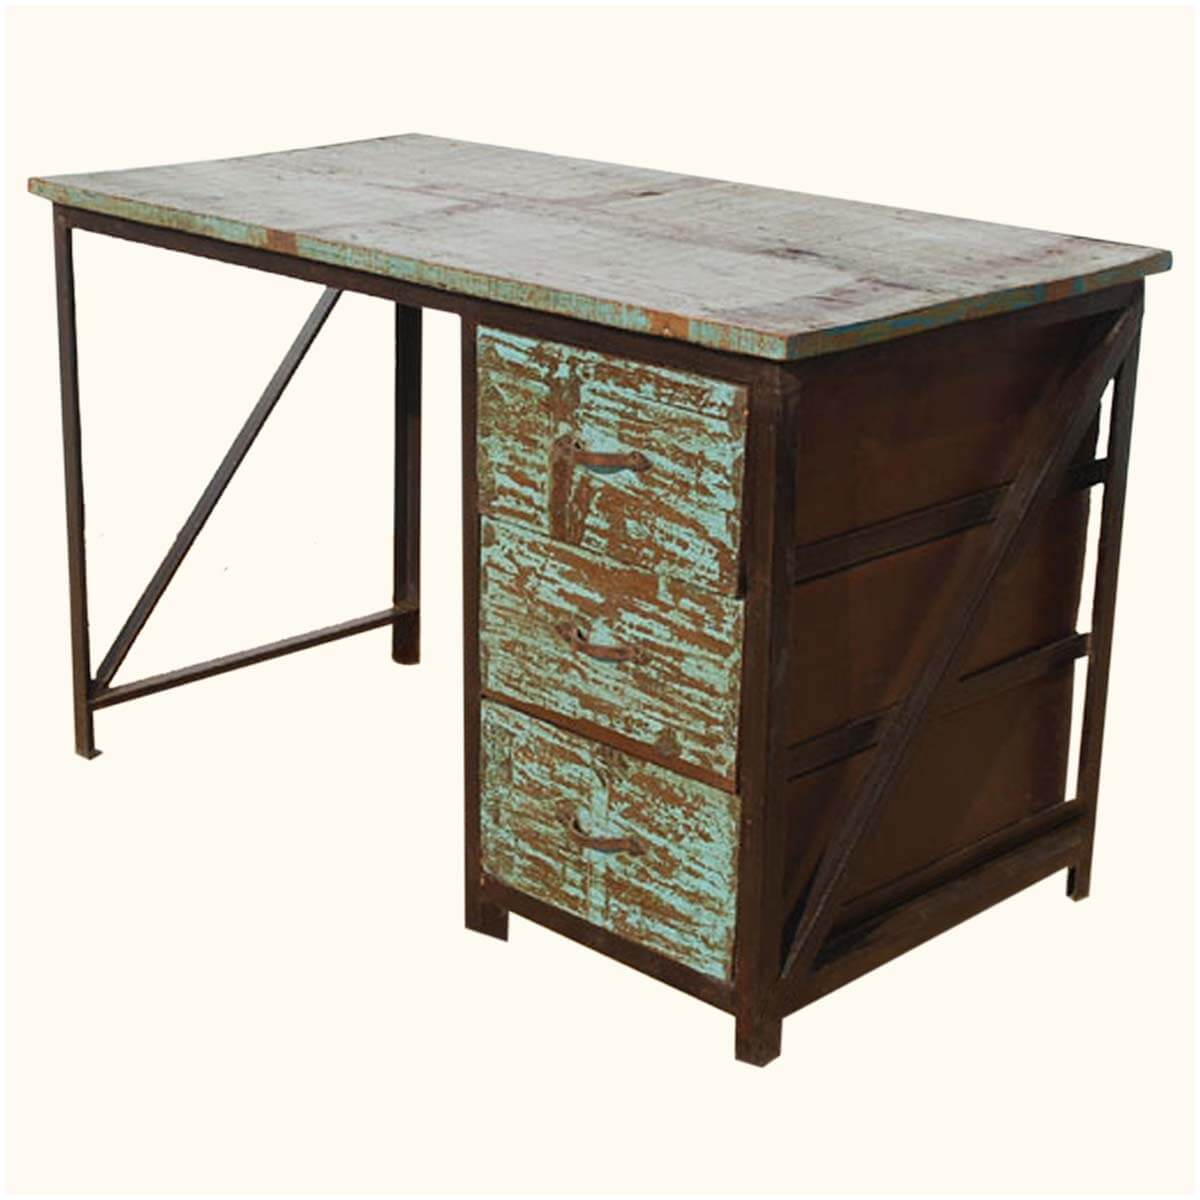 Appalachian Industrial Metal Reclaimed Wood 3-Drawer Pedestal Desk